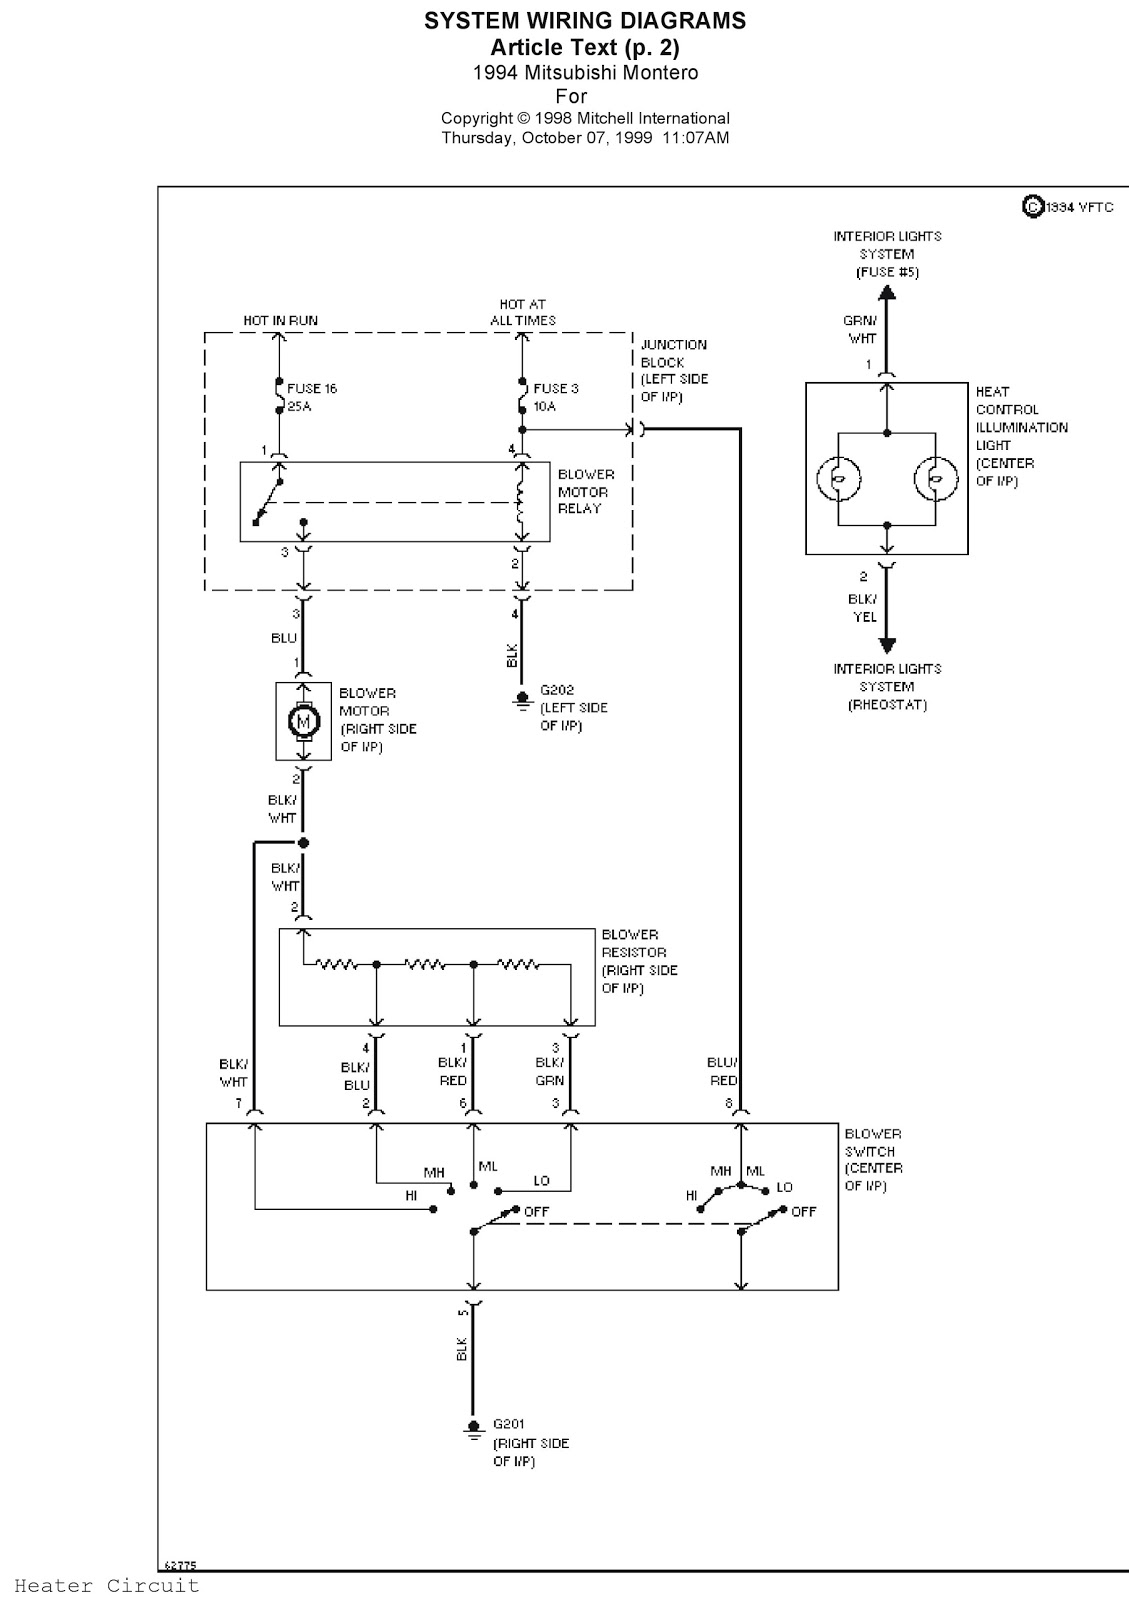 small resolution of 2002 mitsubishi montero sport radio wiring diagram get 1992 mitsubishi montero wiring